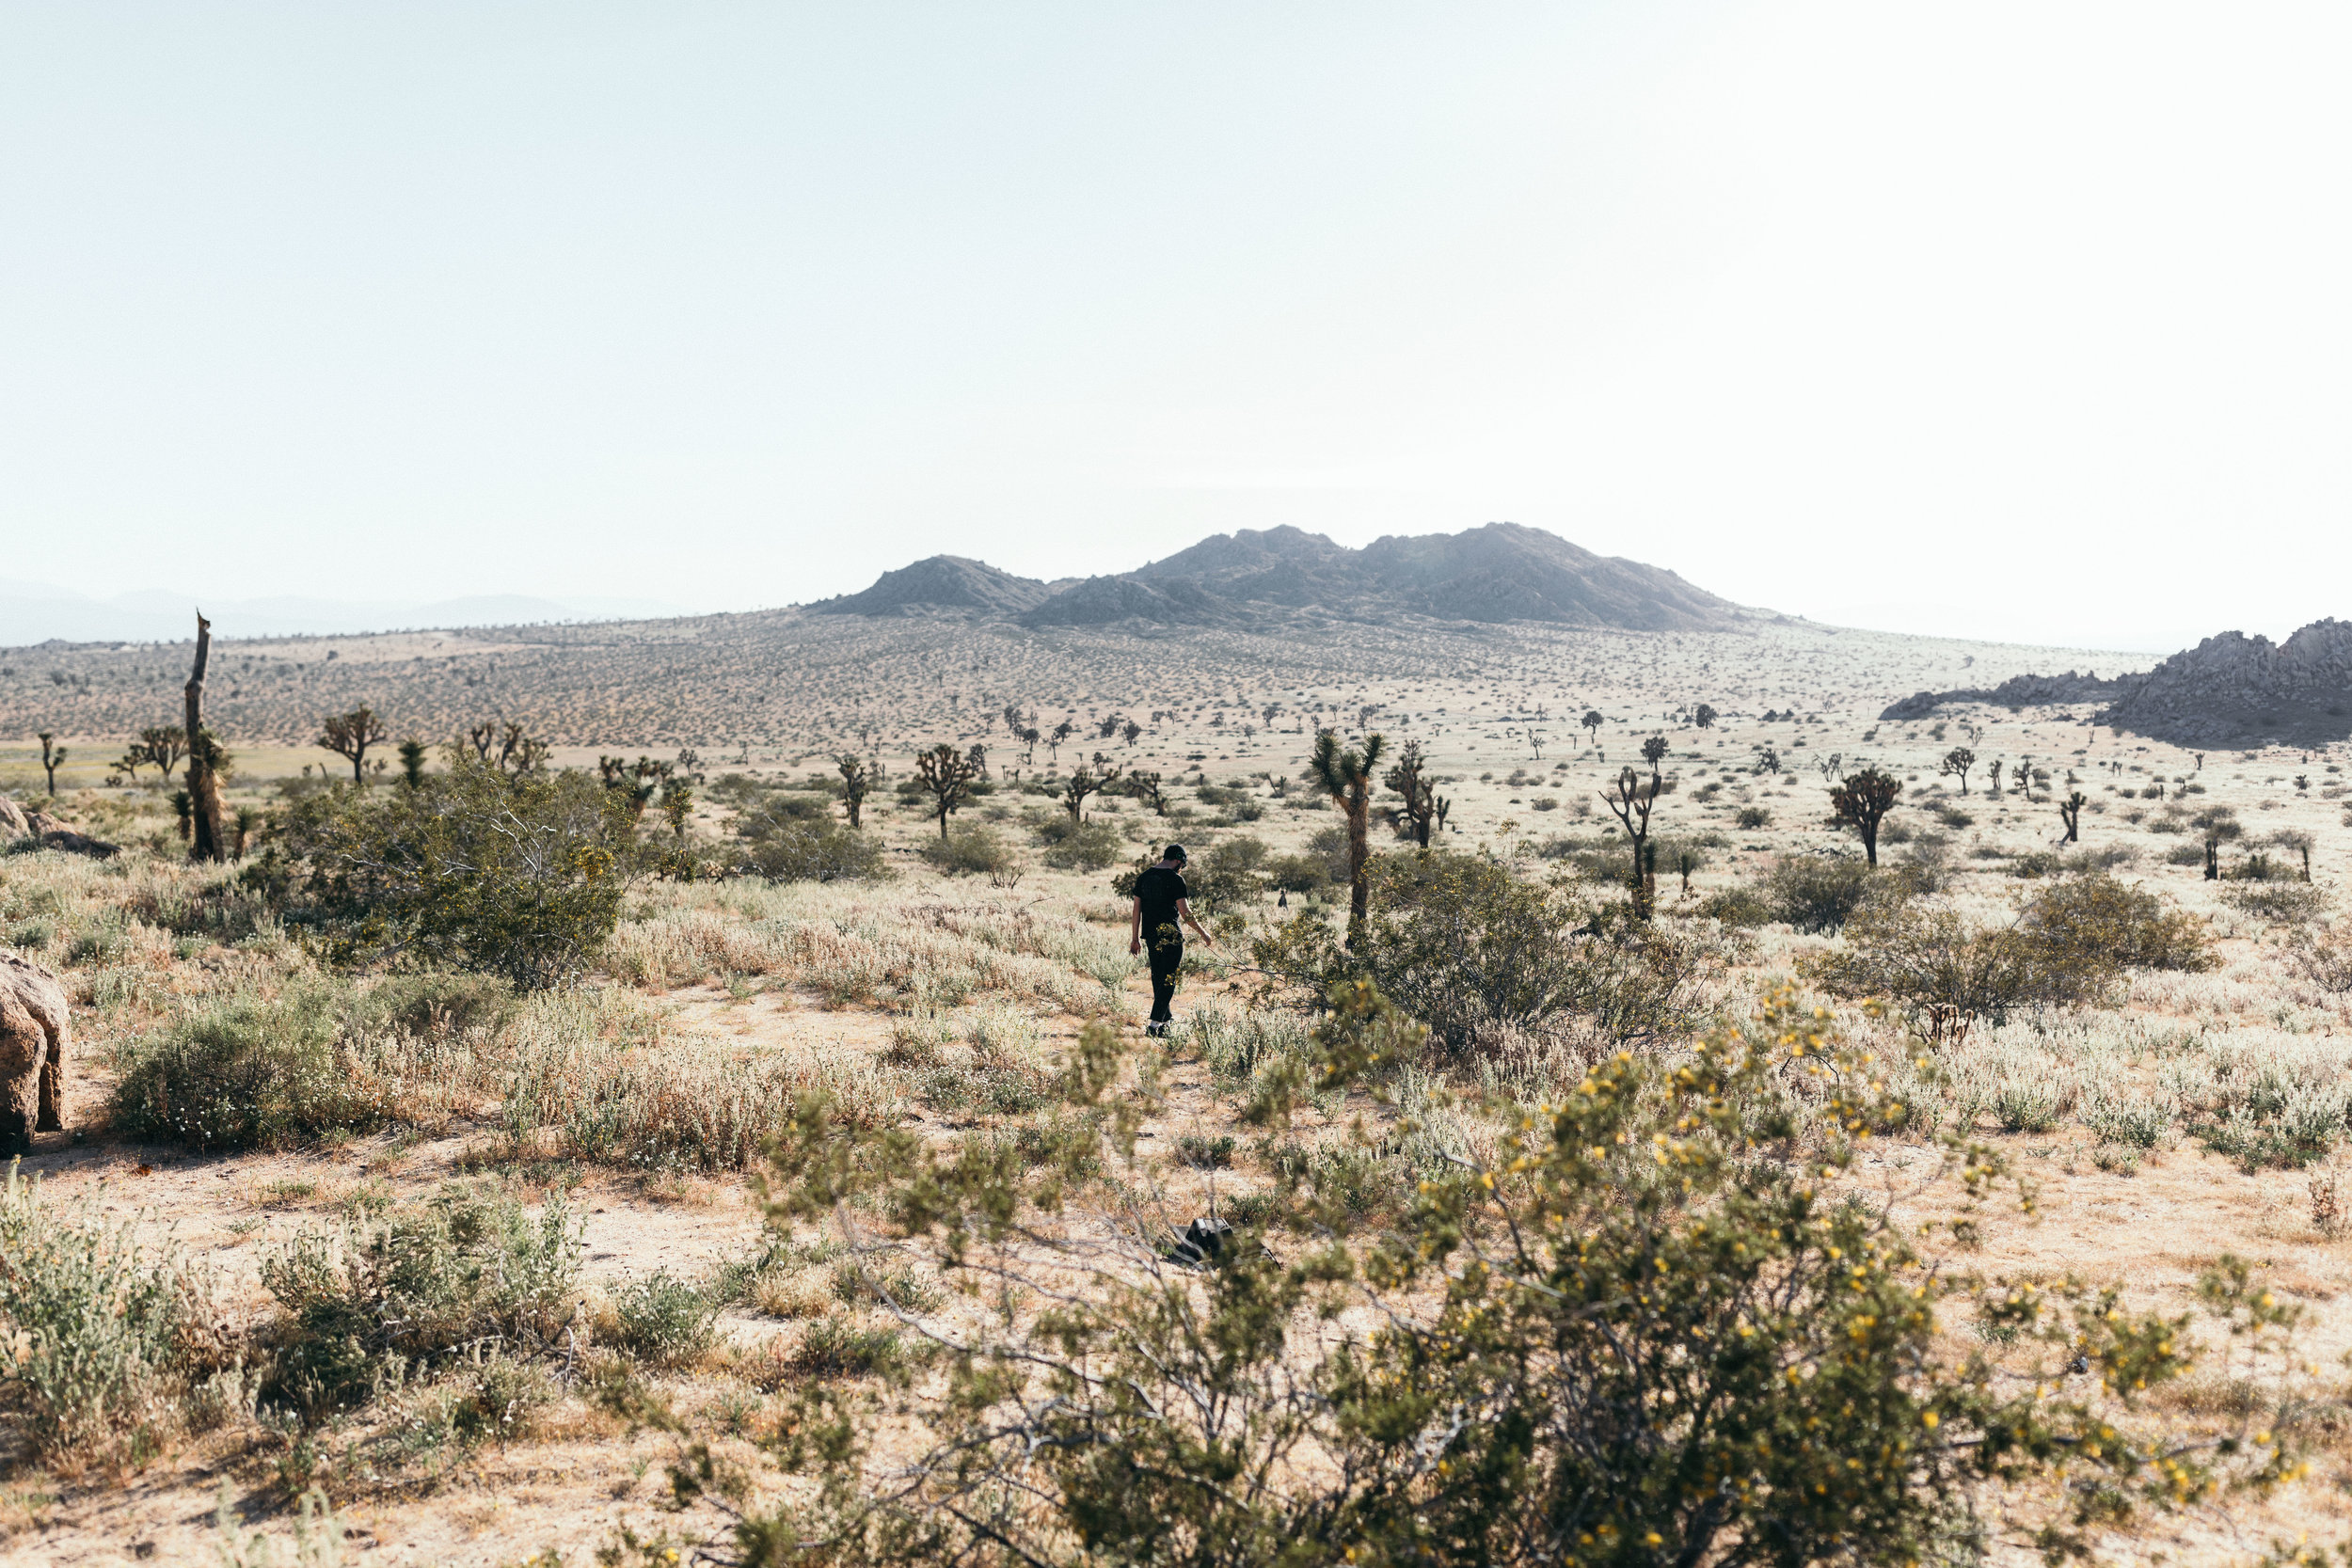 Mitch searching for more desert bones.